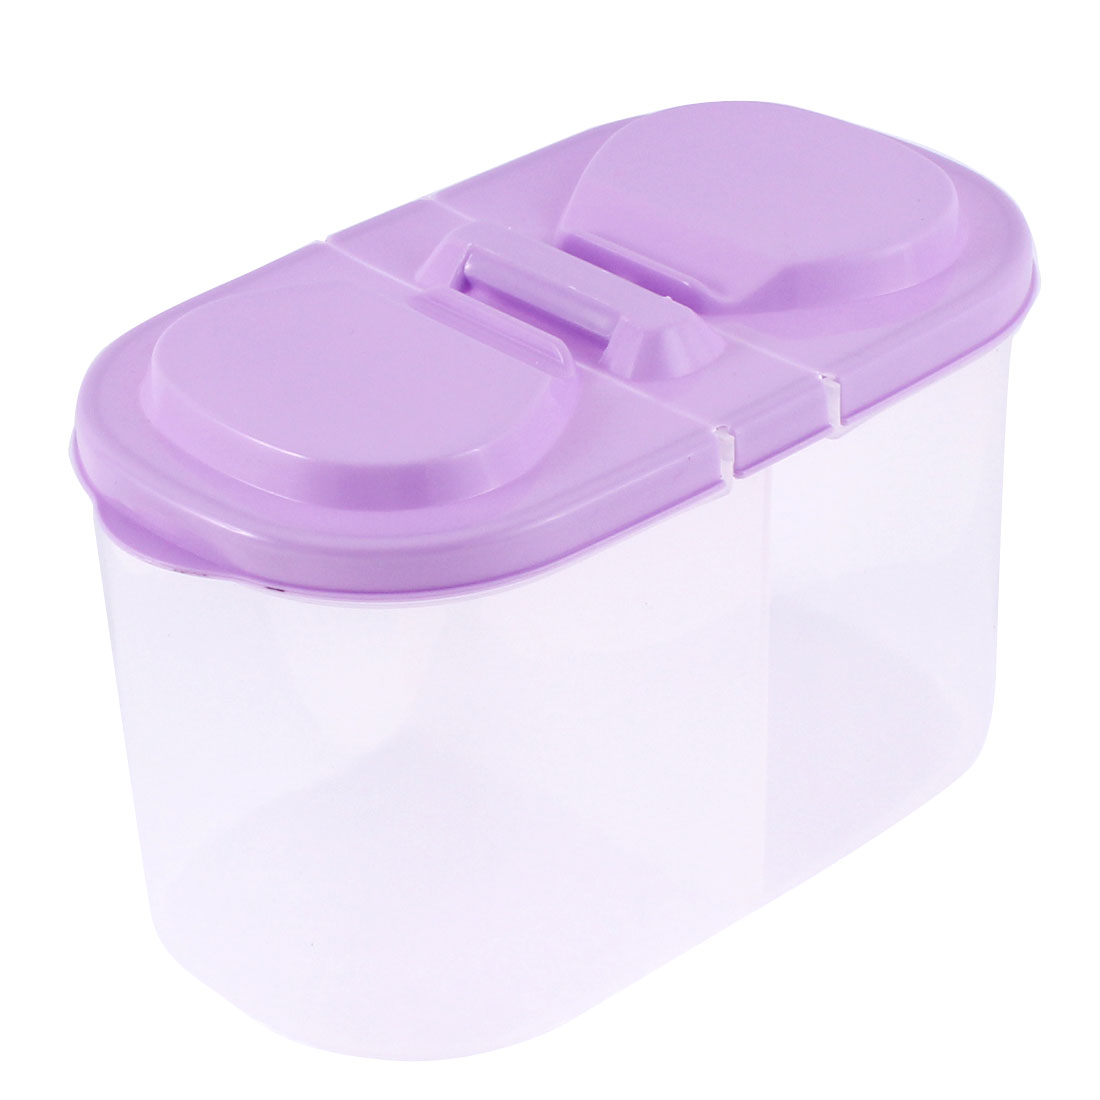 Office Plastic 2 Compartments Food Storage Box 185mmx95mmx110mm Purple